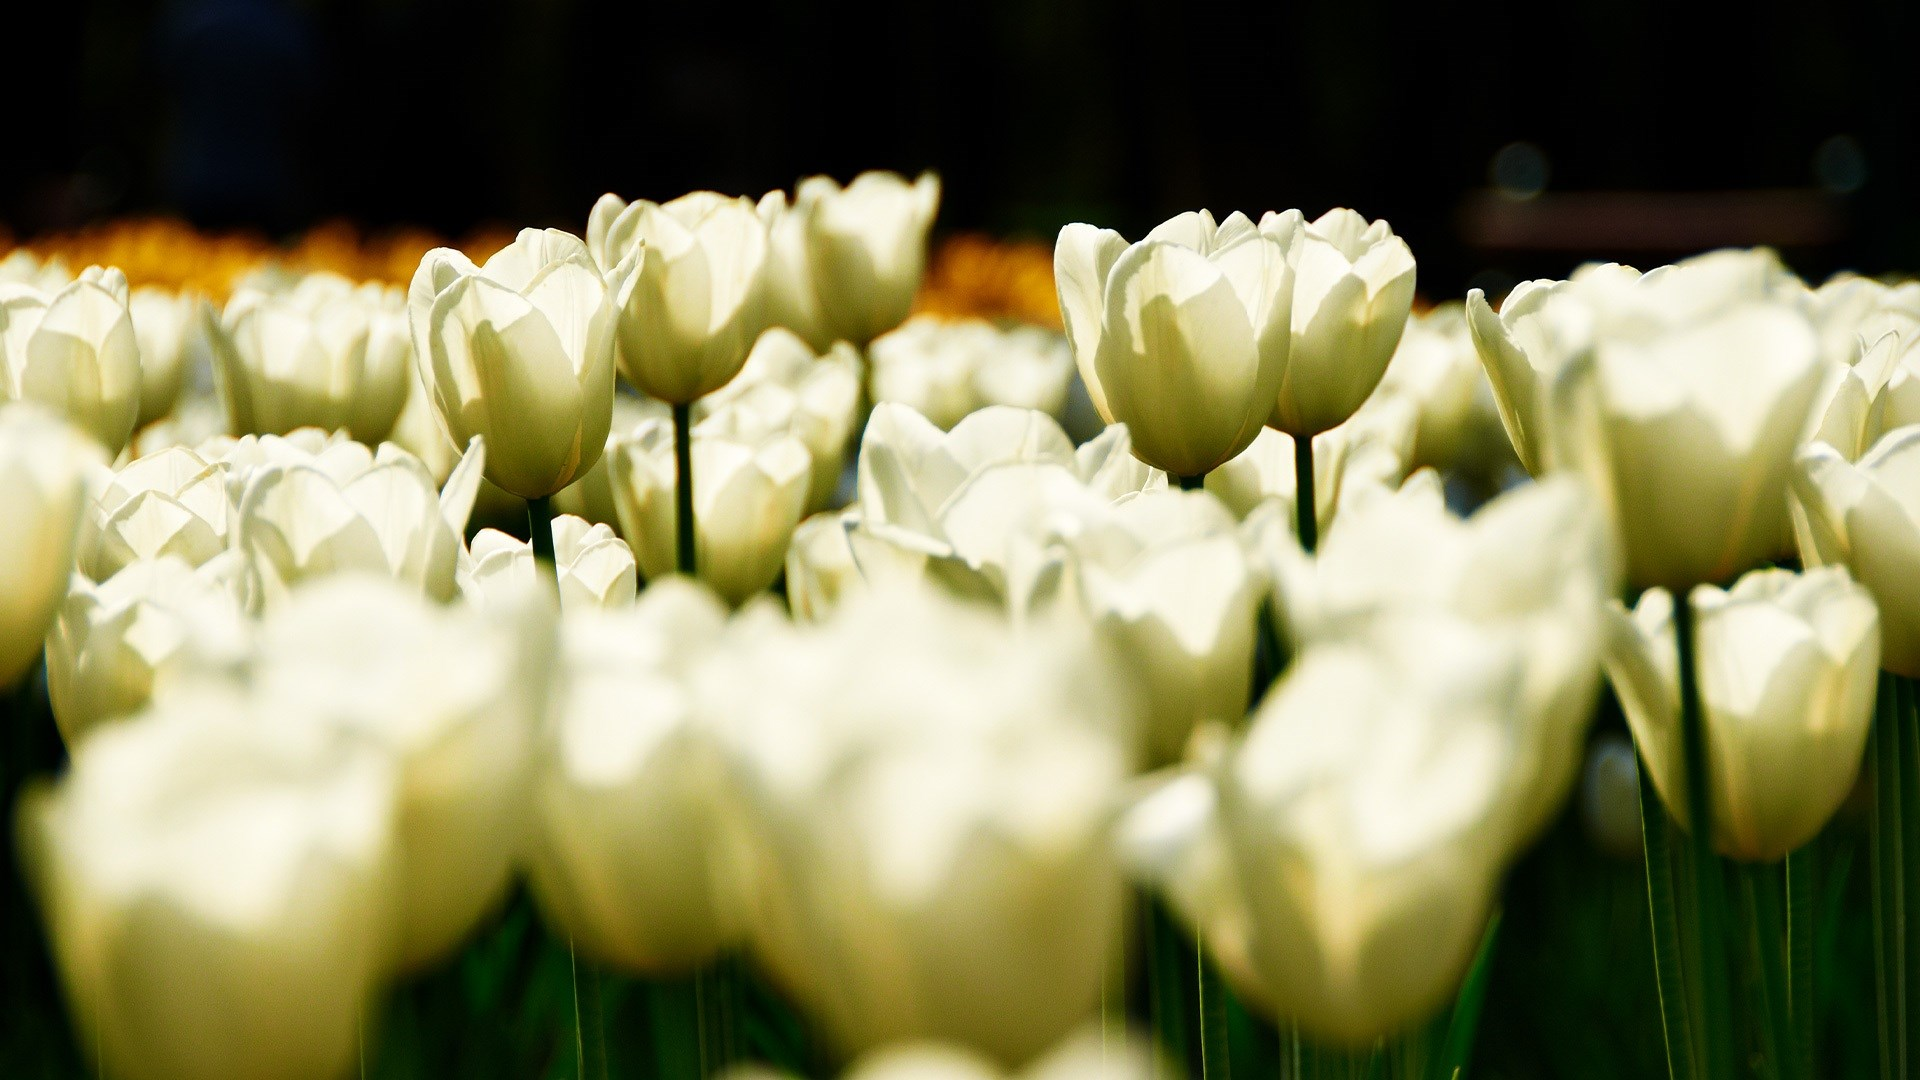 White tulip flower pictures hd desktop wallpapers 4k hd white tulip flower pictures dhlflorist Image collections